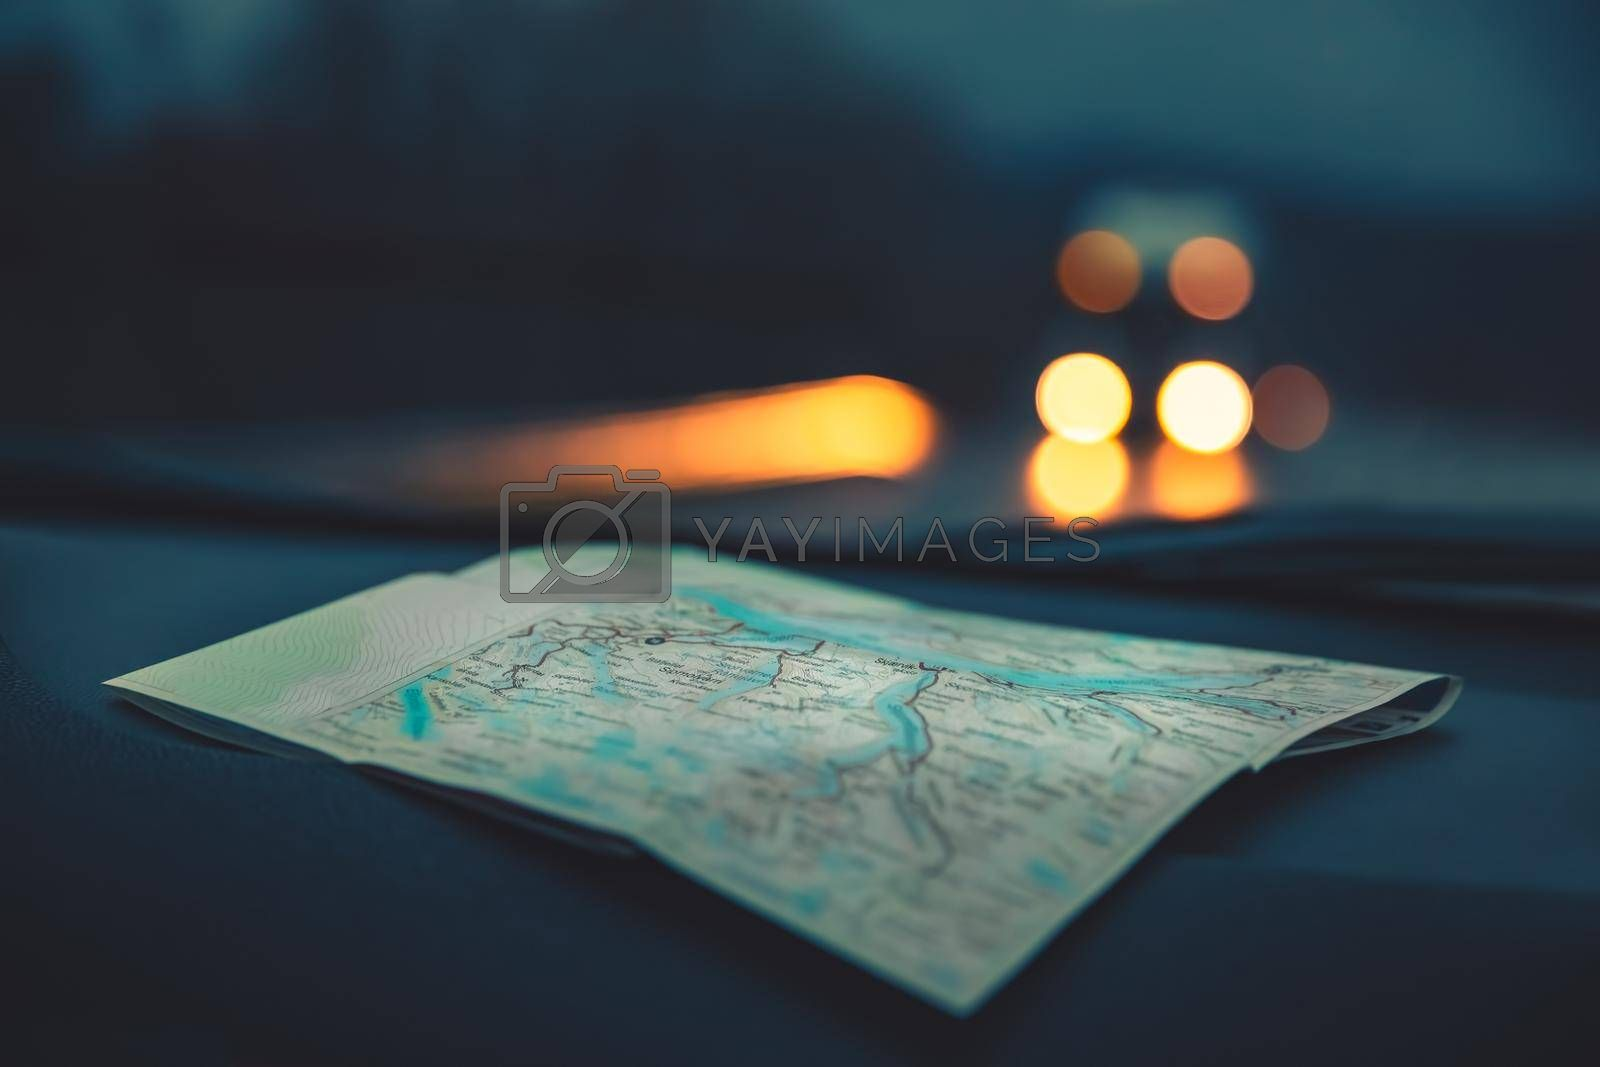 Close Up Photo on a Map used in the Car. Automobile Lights on the Highway at Night. Traveling Concept